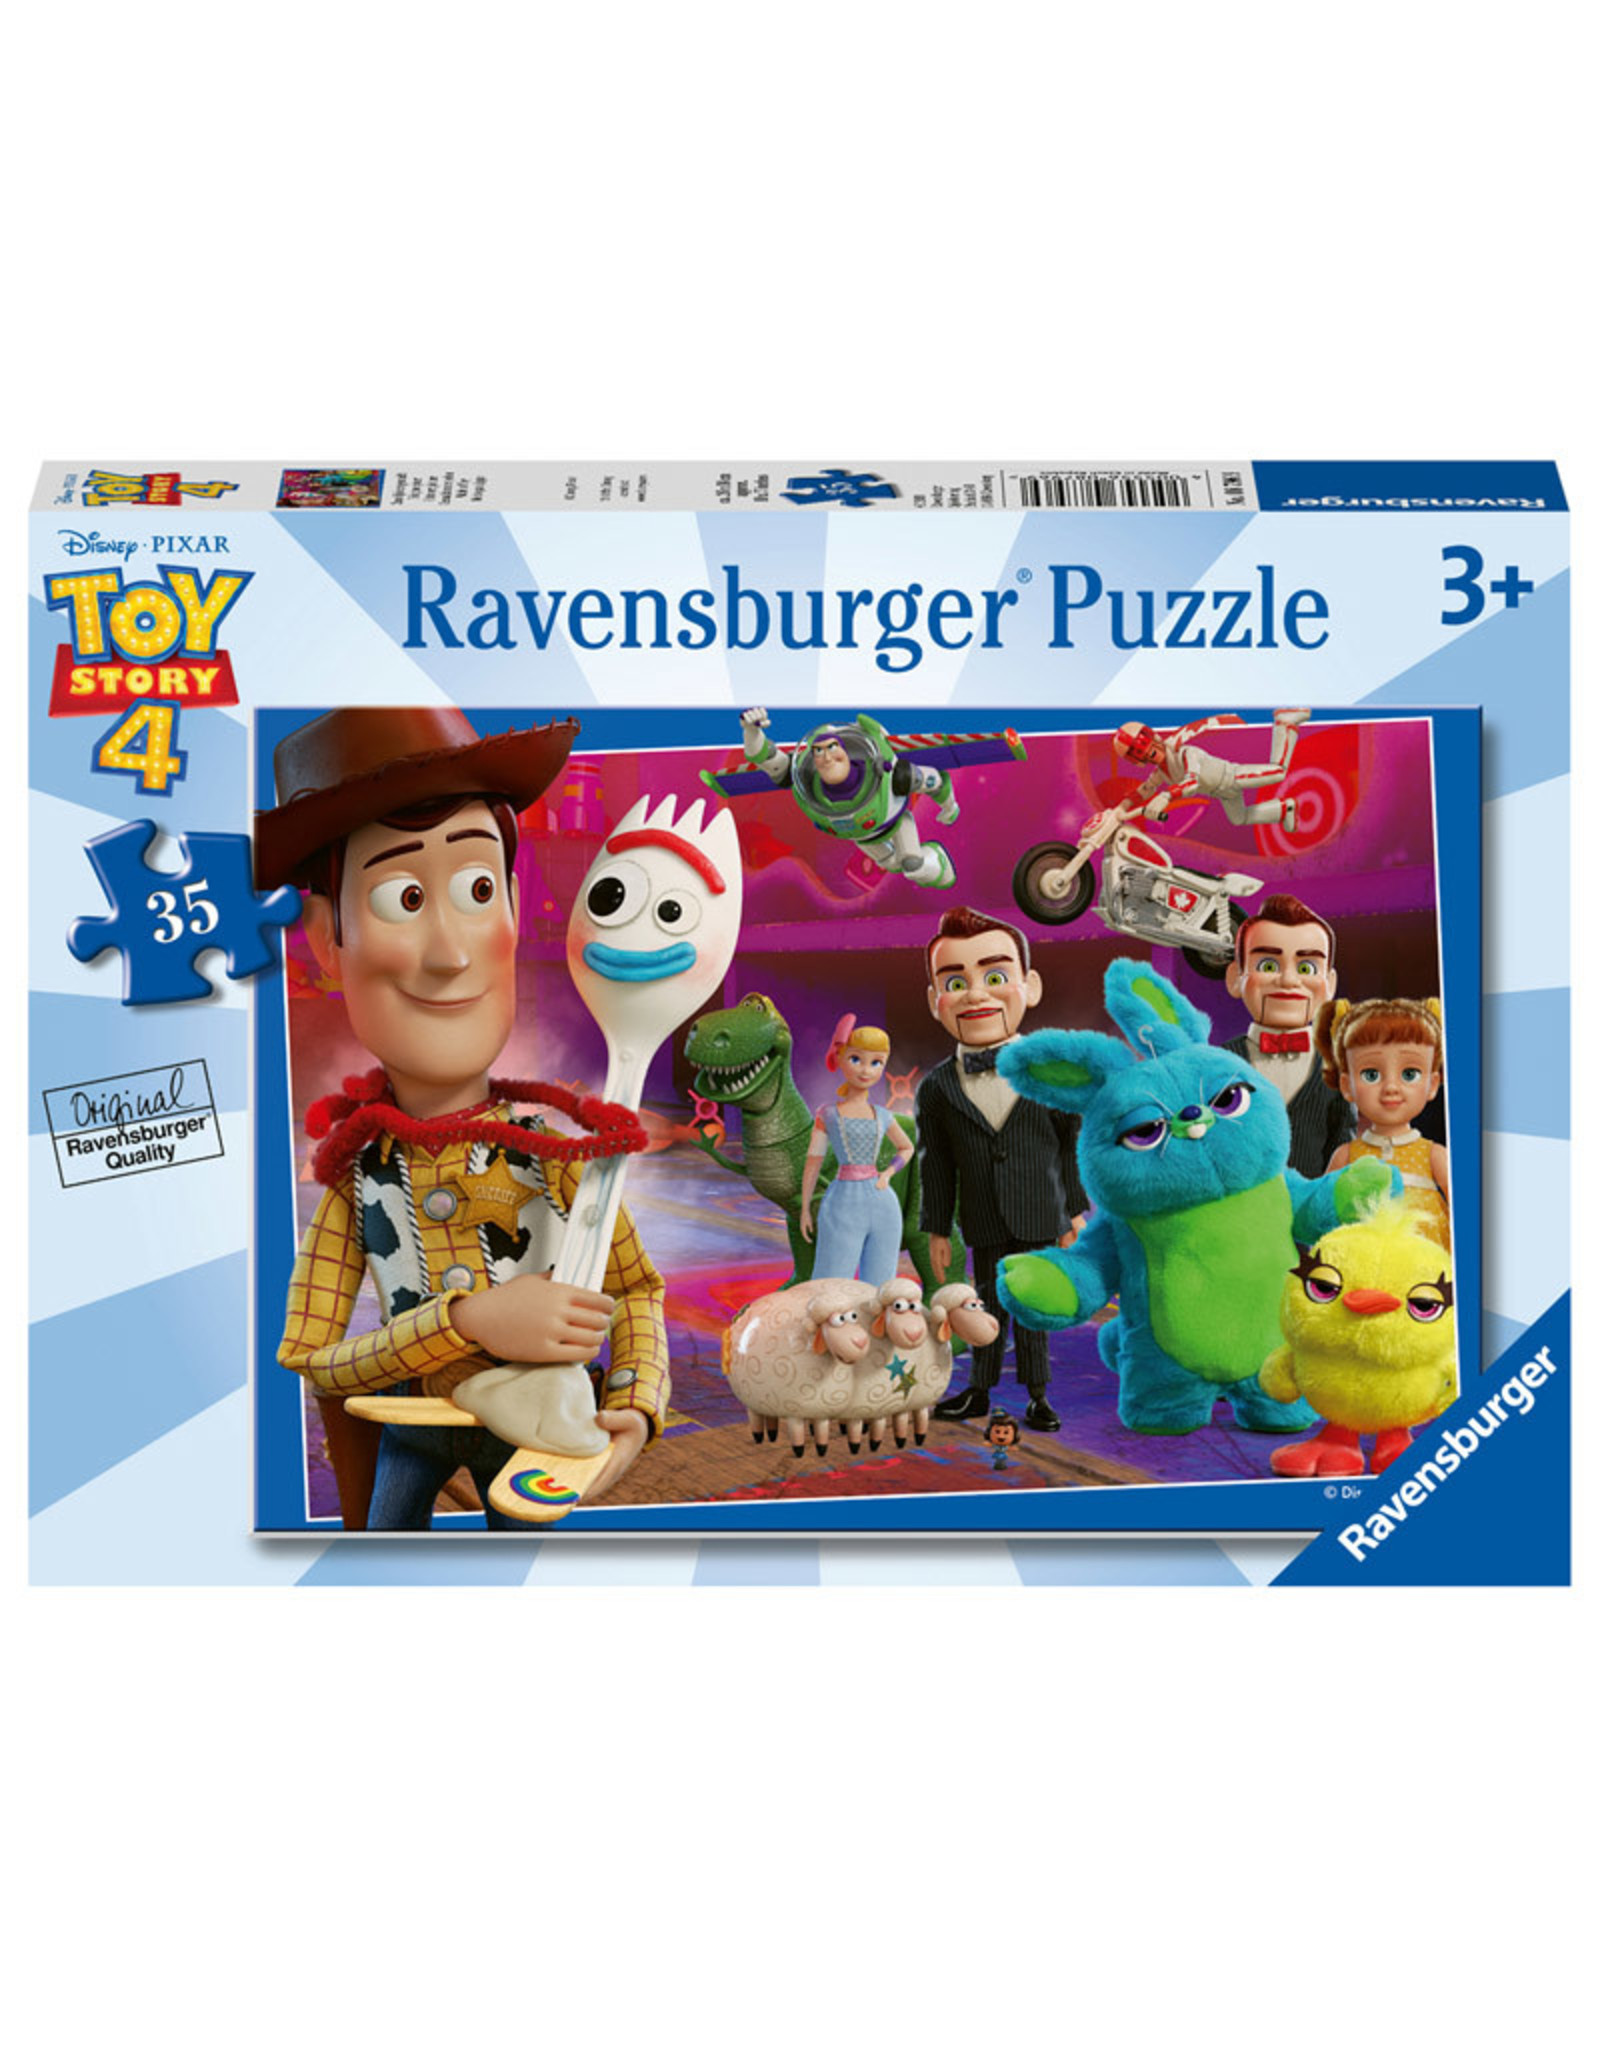 Ravensburger Toy Story 35pc